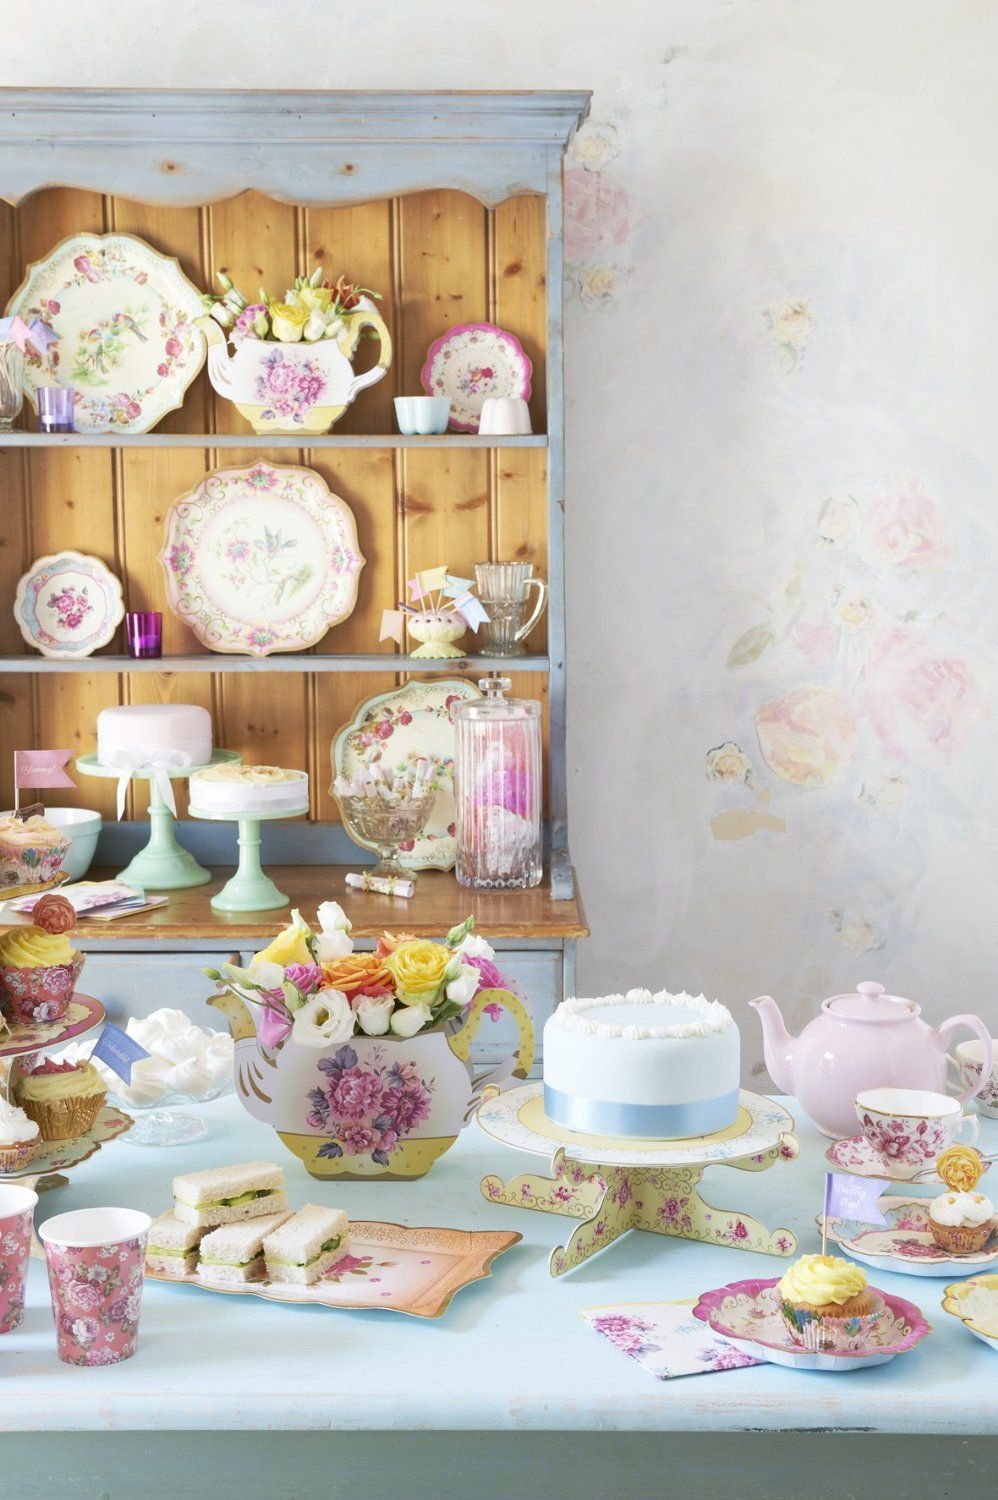 Truly Scrumptious from Talking Tables & Amazon.com | Talking Tables Truly Scrumptious Dessert/Cake Plates ...